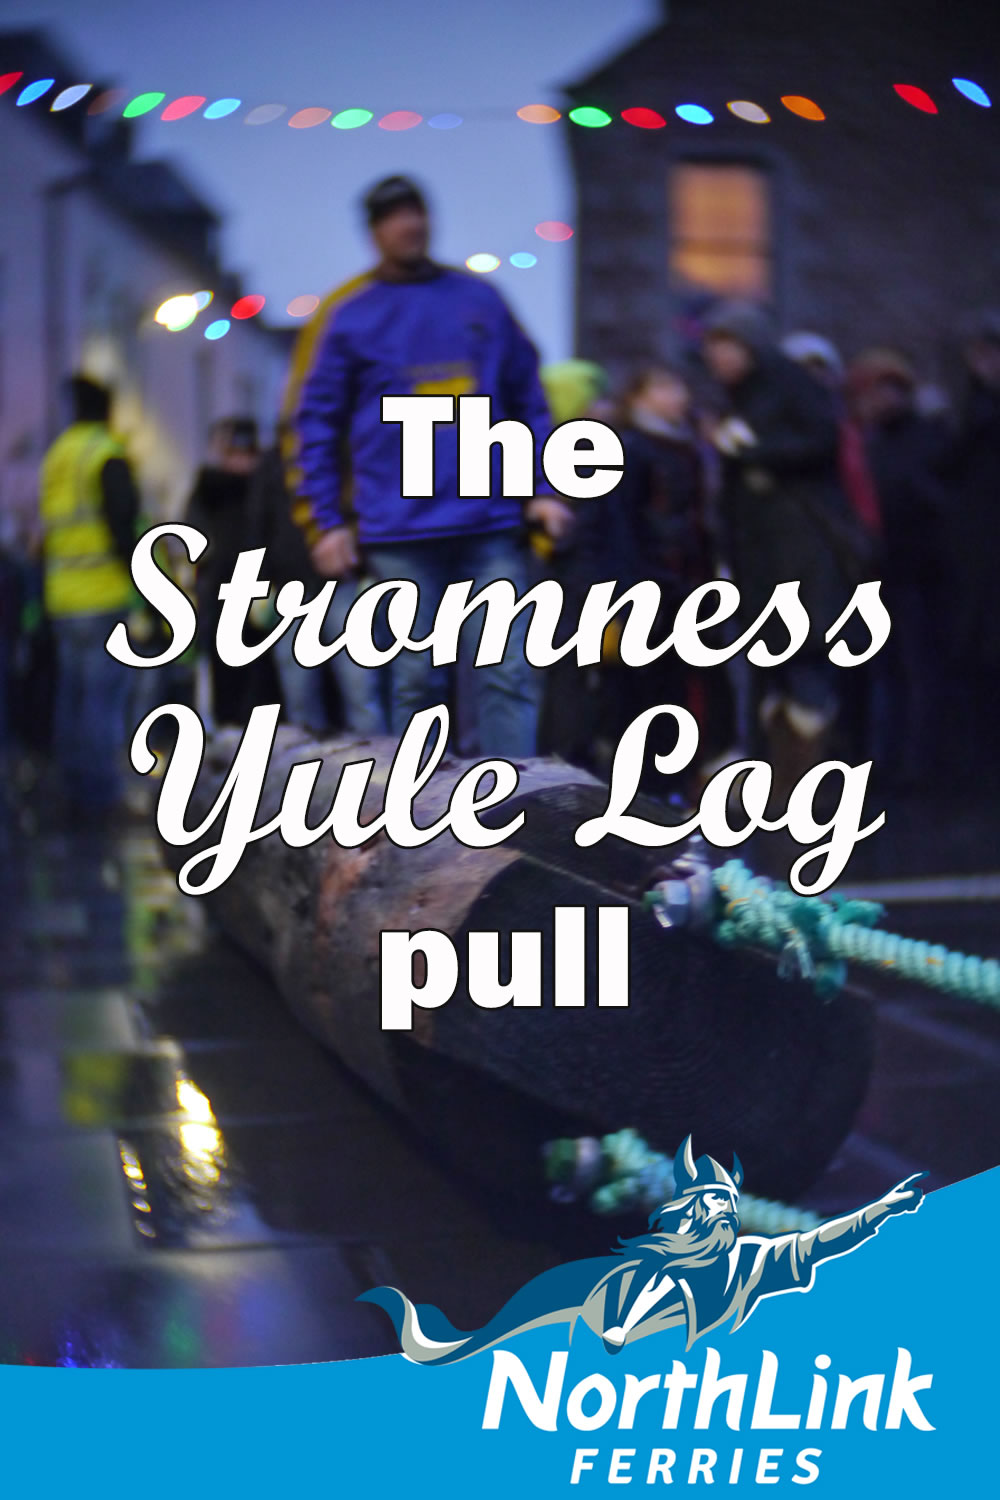 The Stromness Yule Log pull